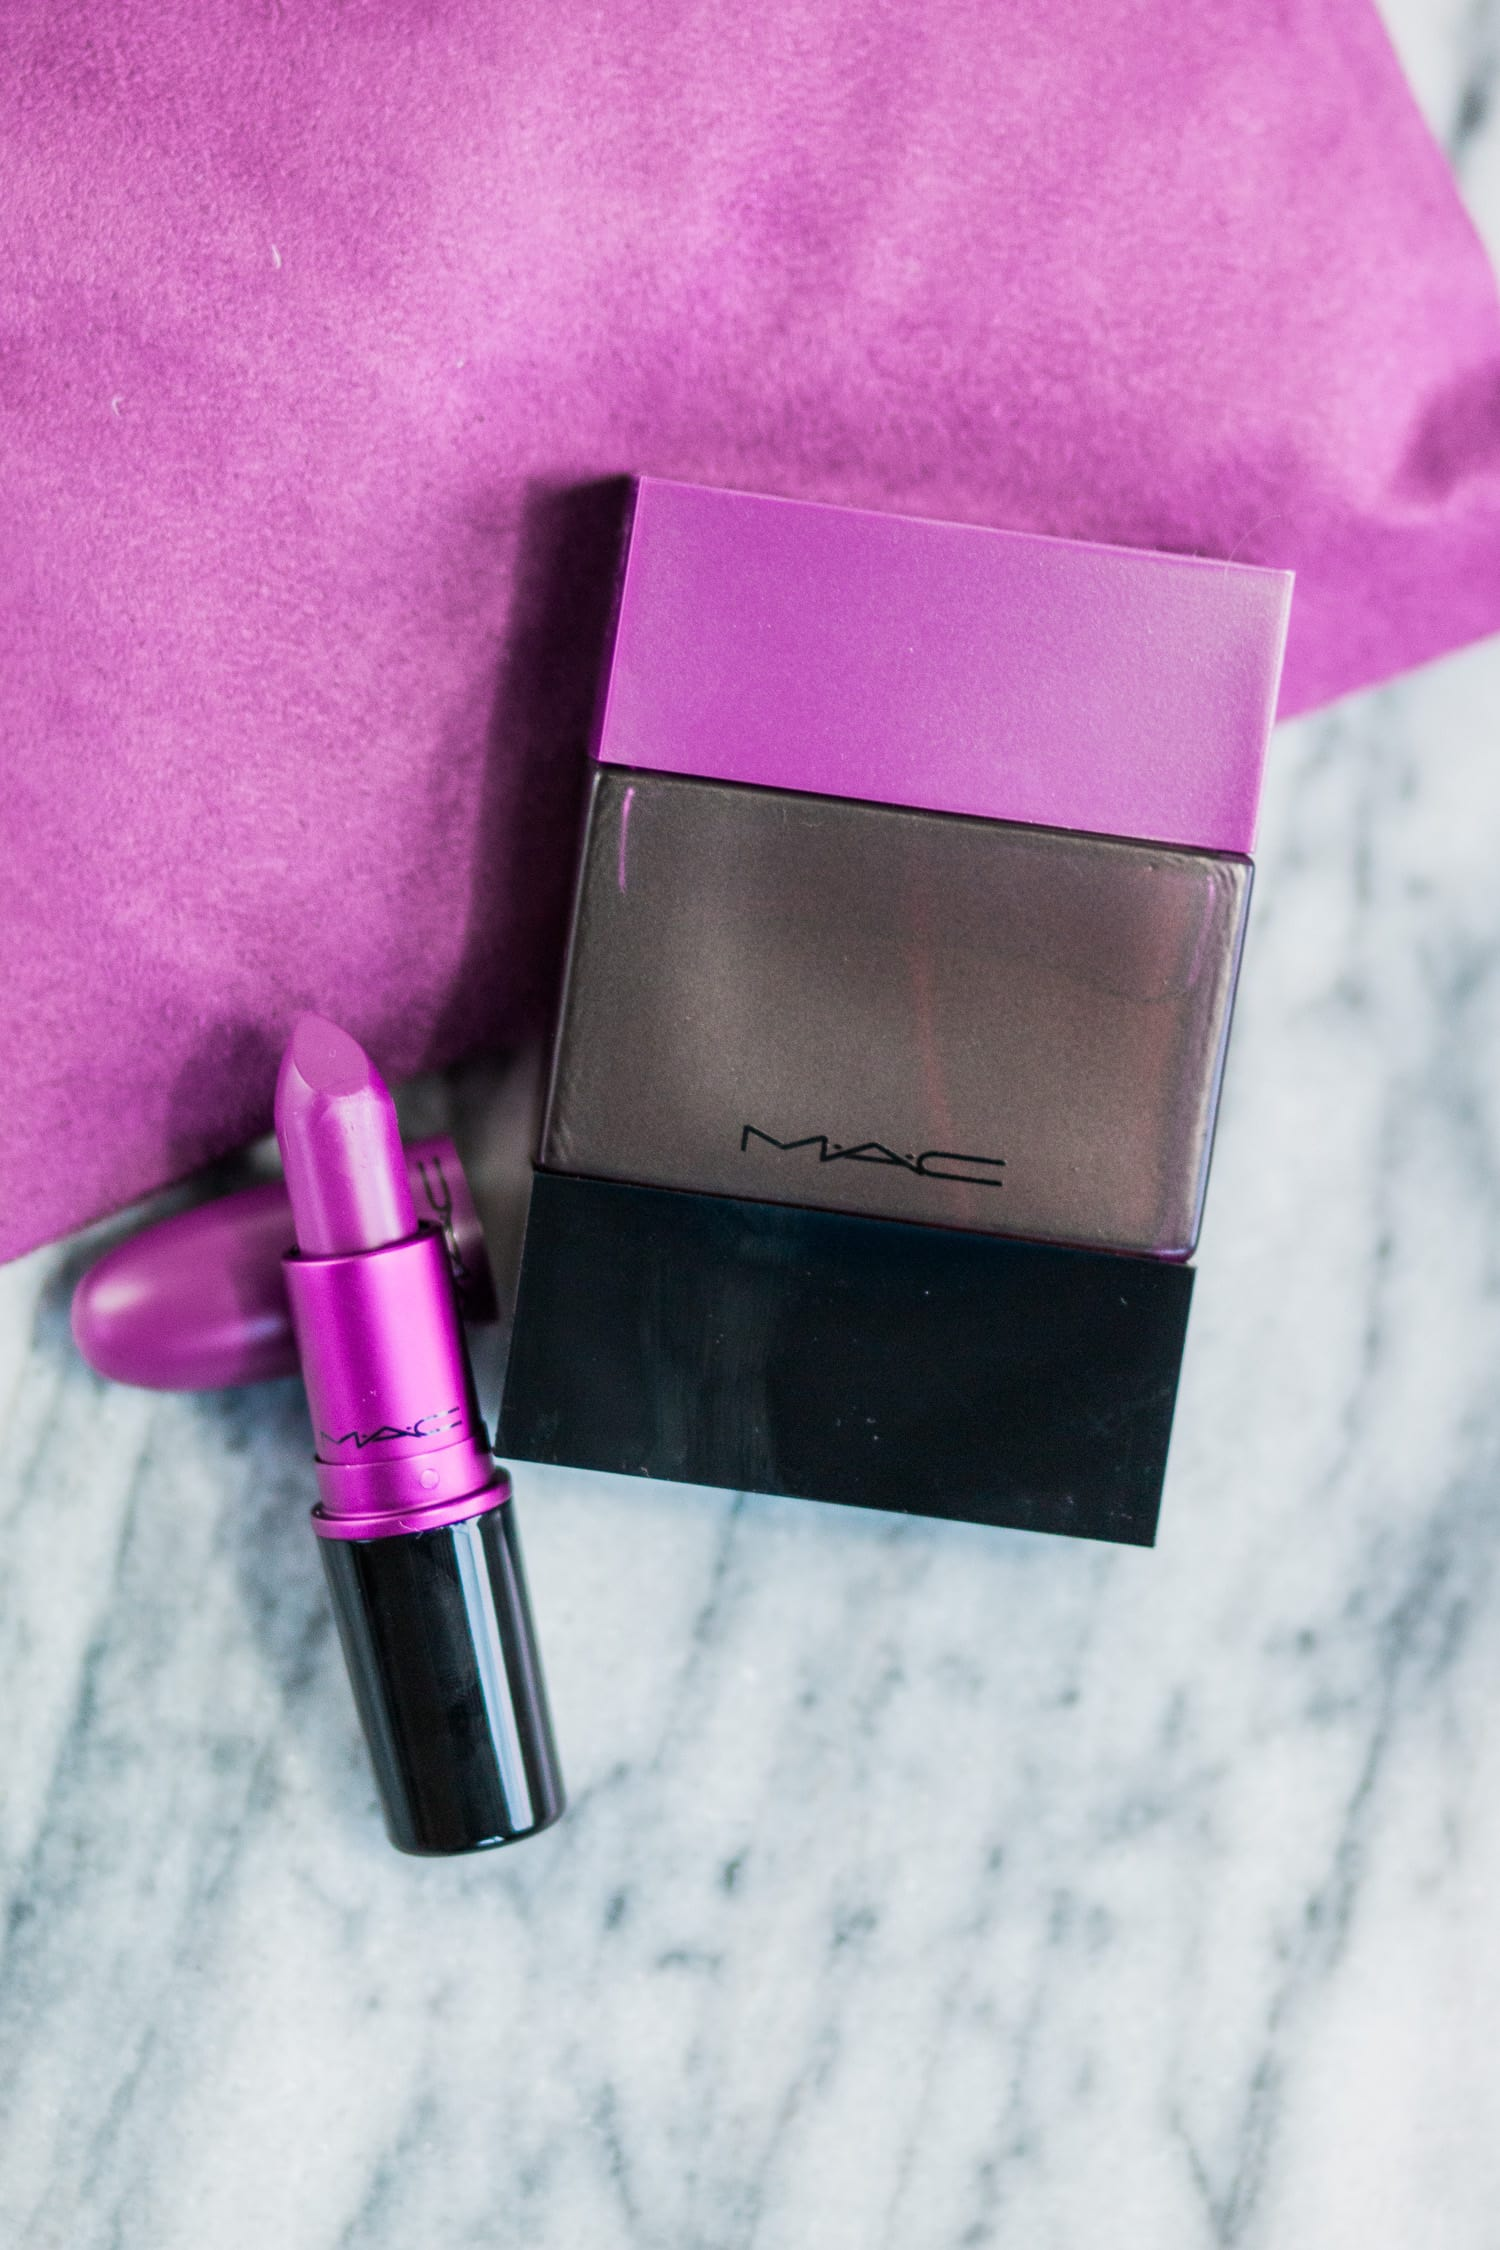 A full review of the MAC Shadescents Heroine perfume and lipstick by Orlando, Florida, beauty blogger Ashley Brooke Nicholas